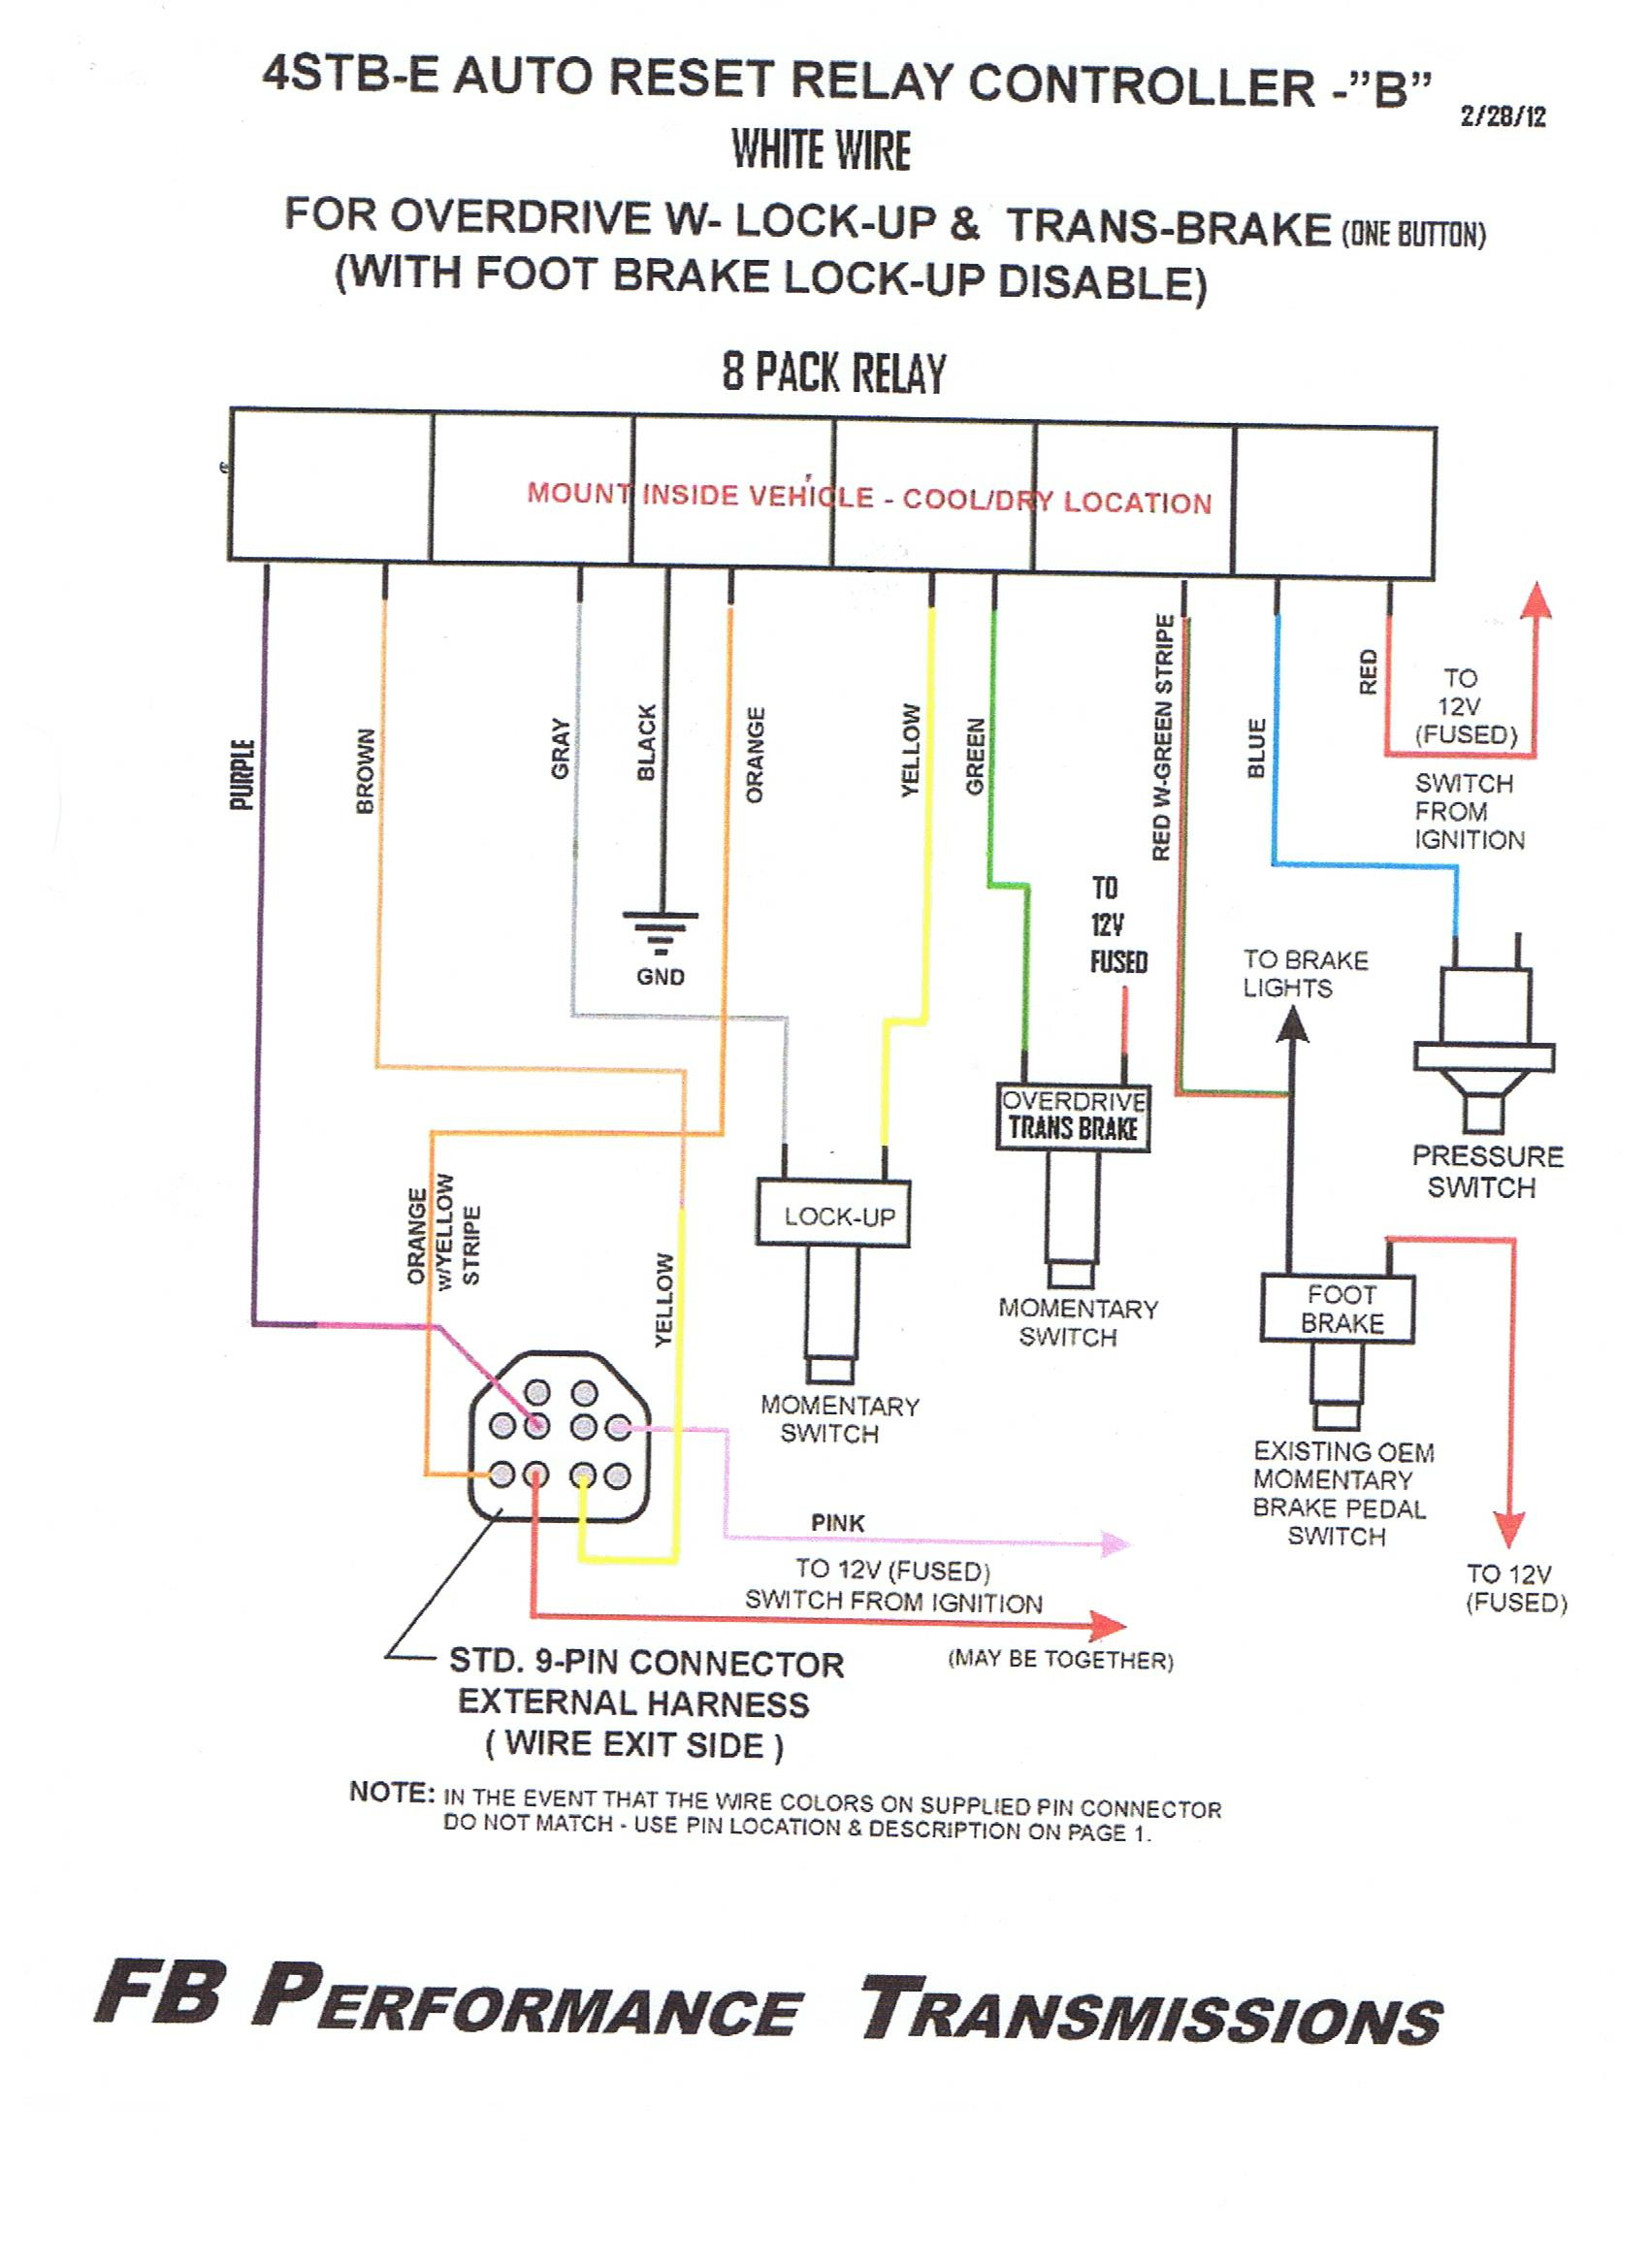 4T40E Diagram | Wiring Diagram - 4L60E Wiring Harness Diagram